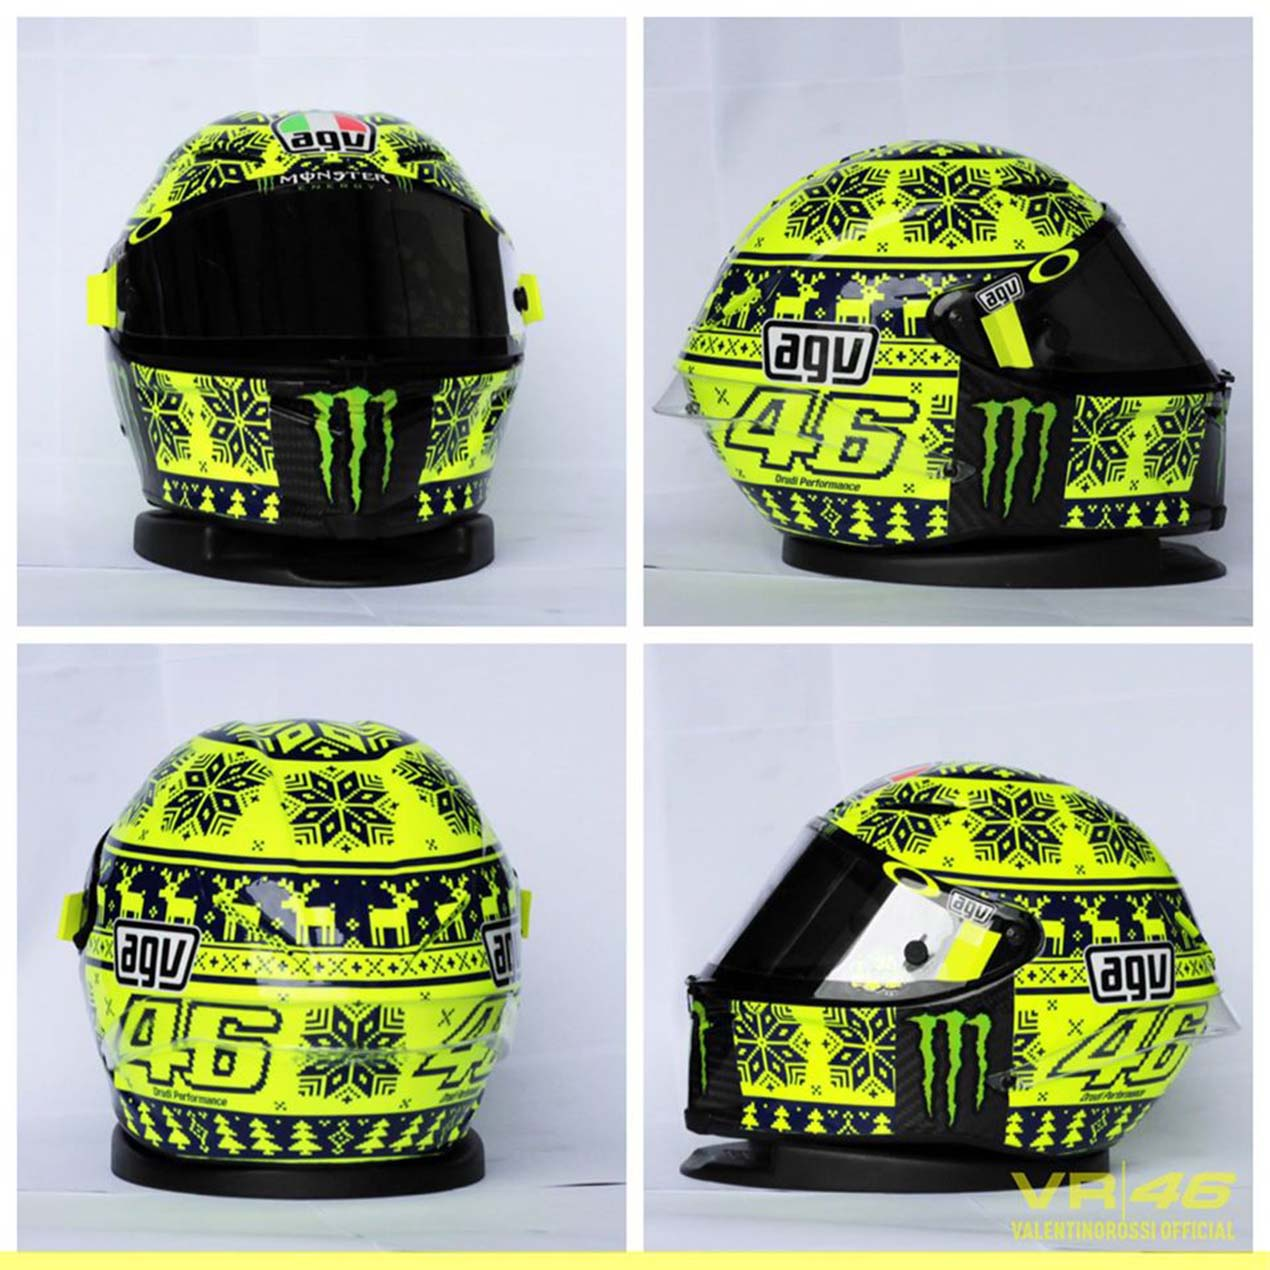 Photos Rossi S Quot Ugly Xmas Sweater Quot Helmet At Sepang Asphalt Amp Rubber